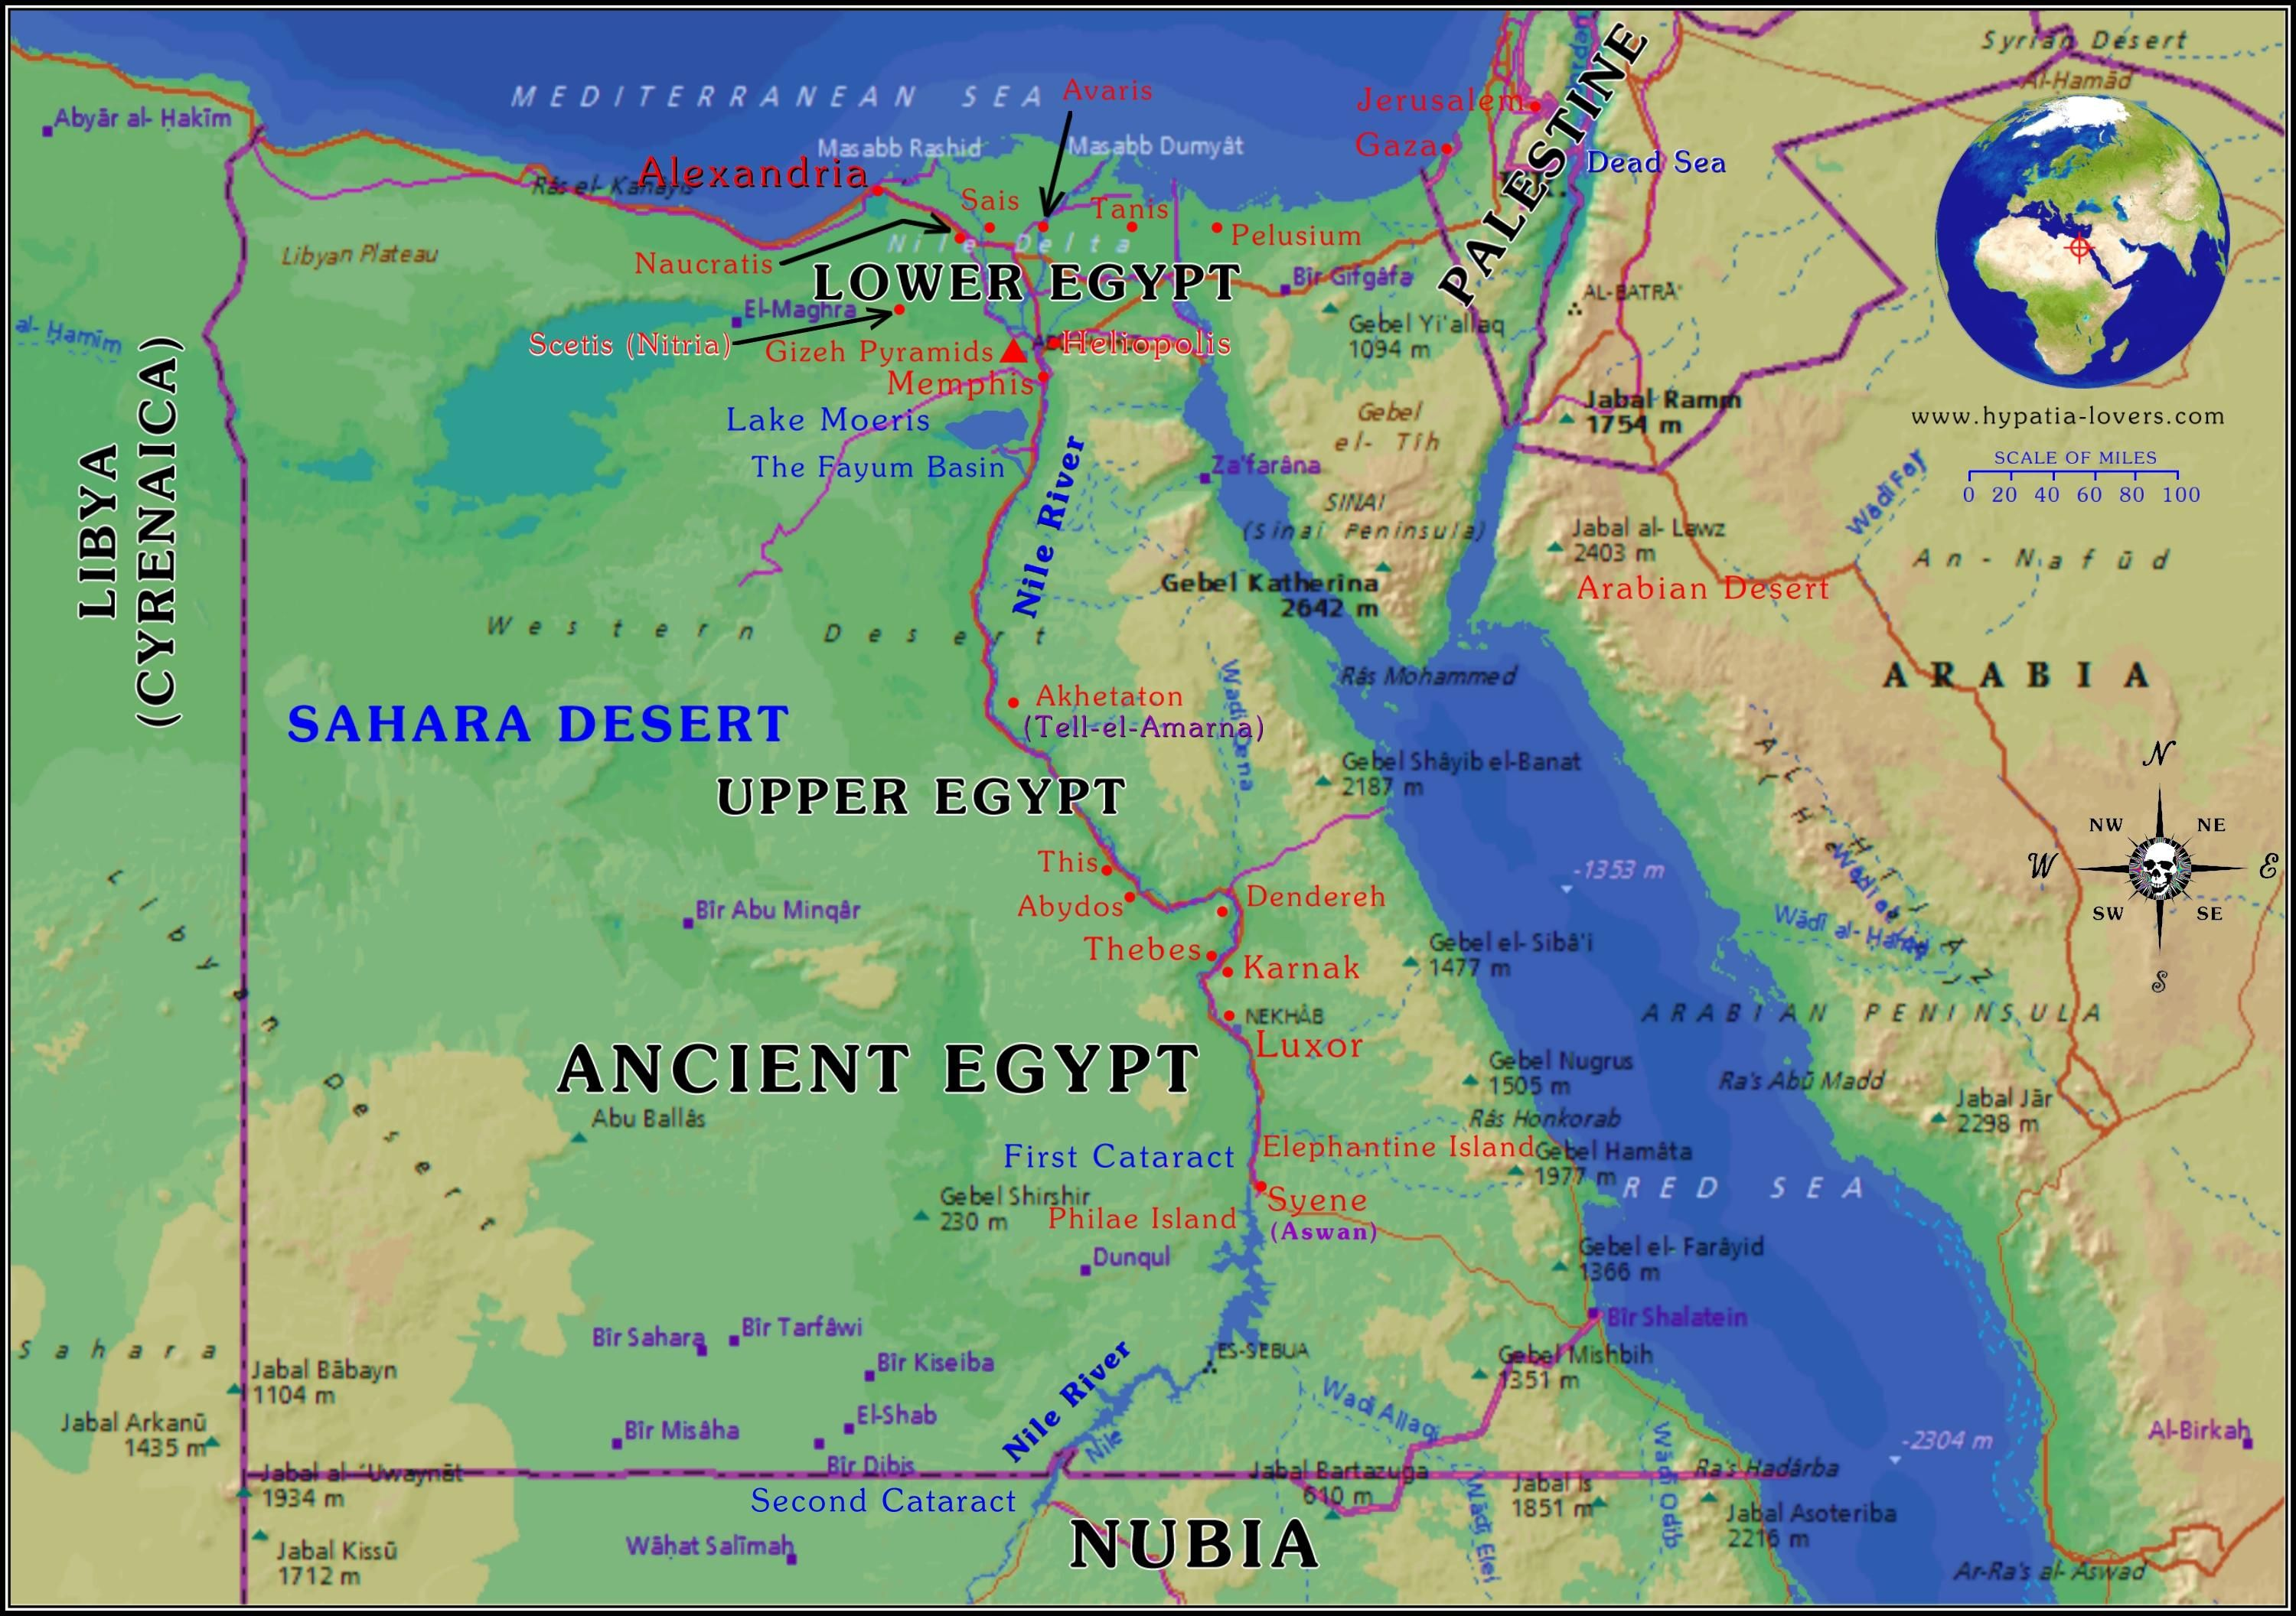 Map Of Ancient Egypt And Surrounding Area With Terrain